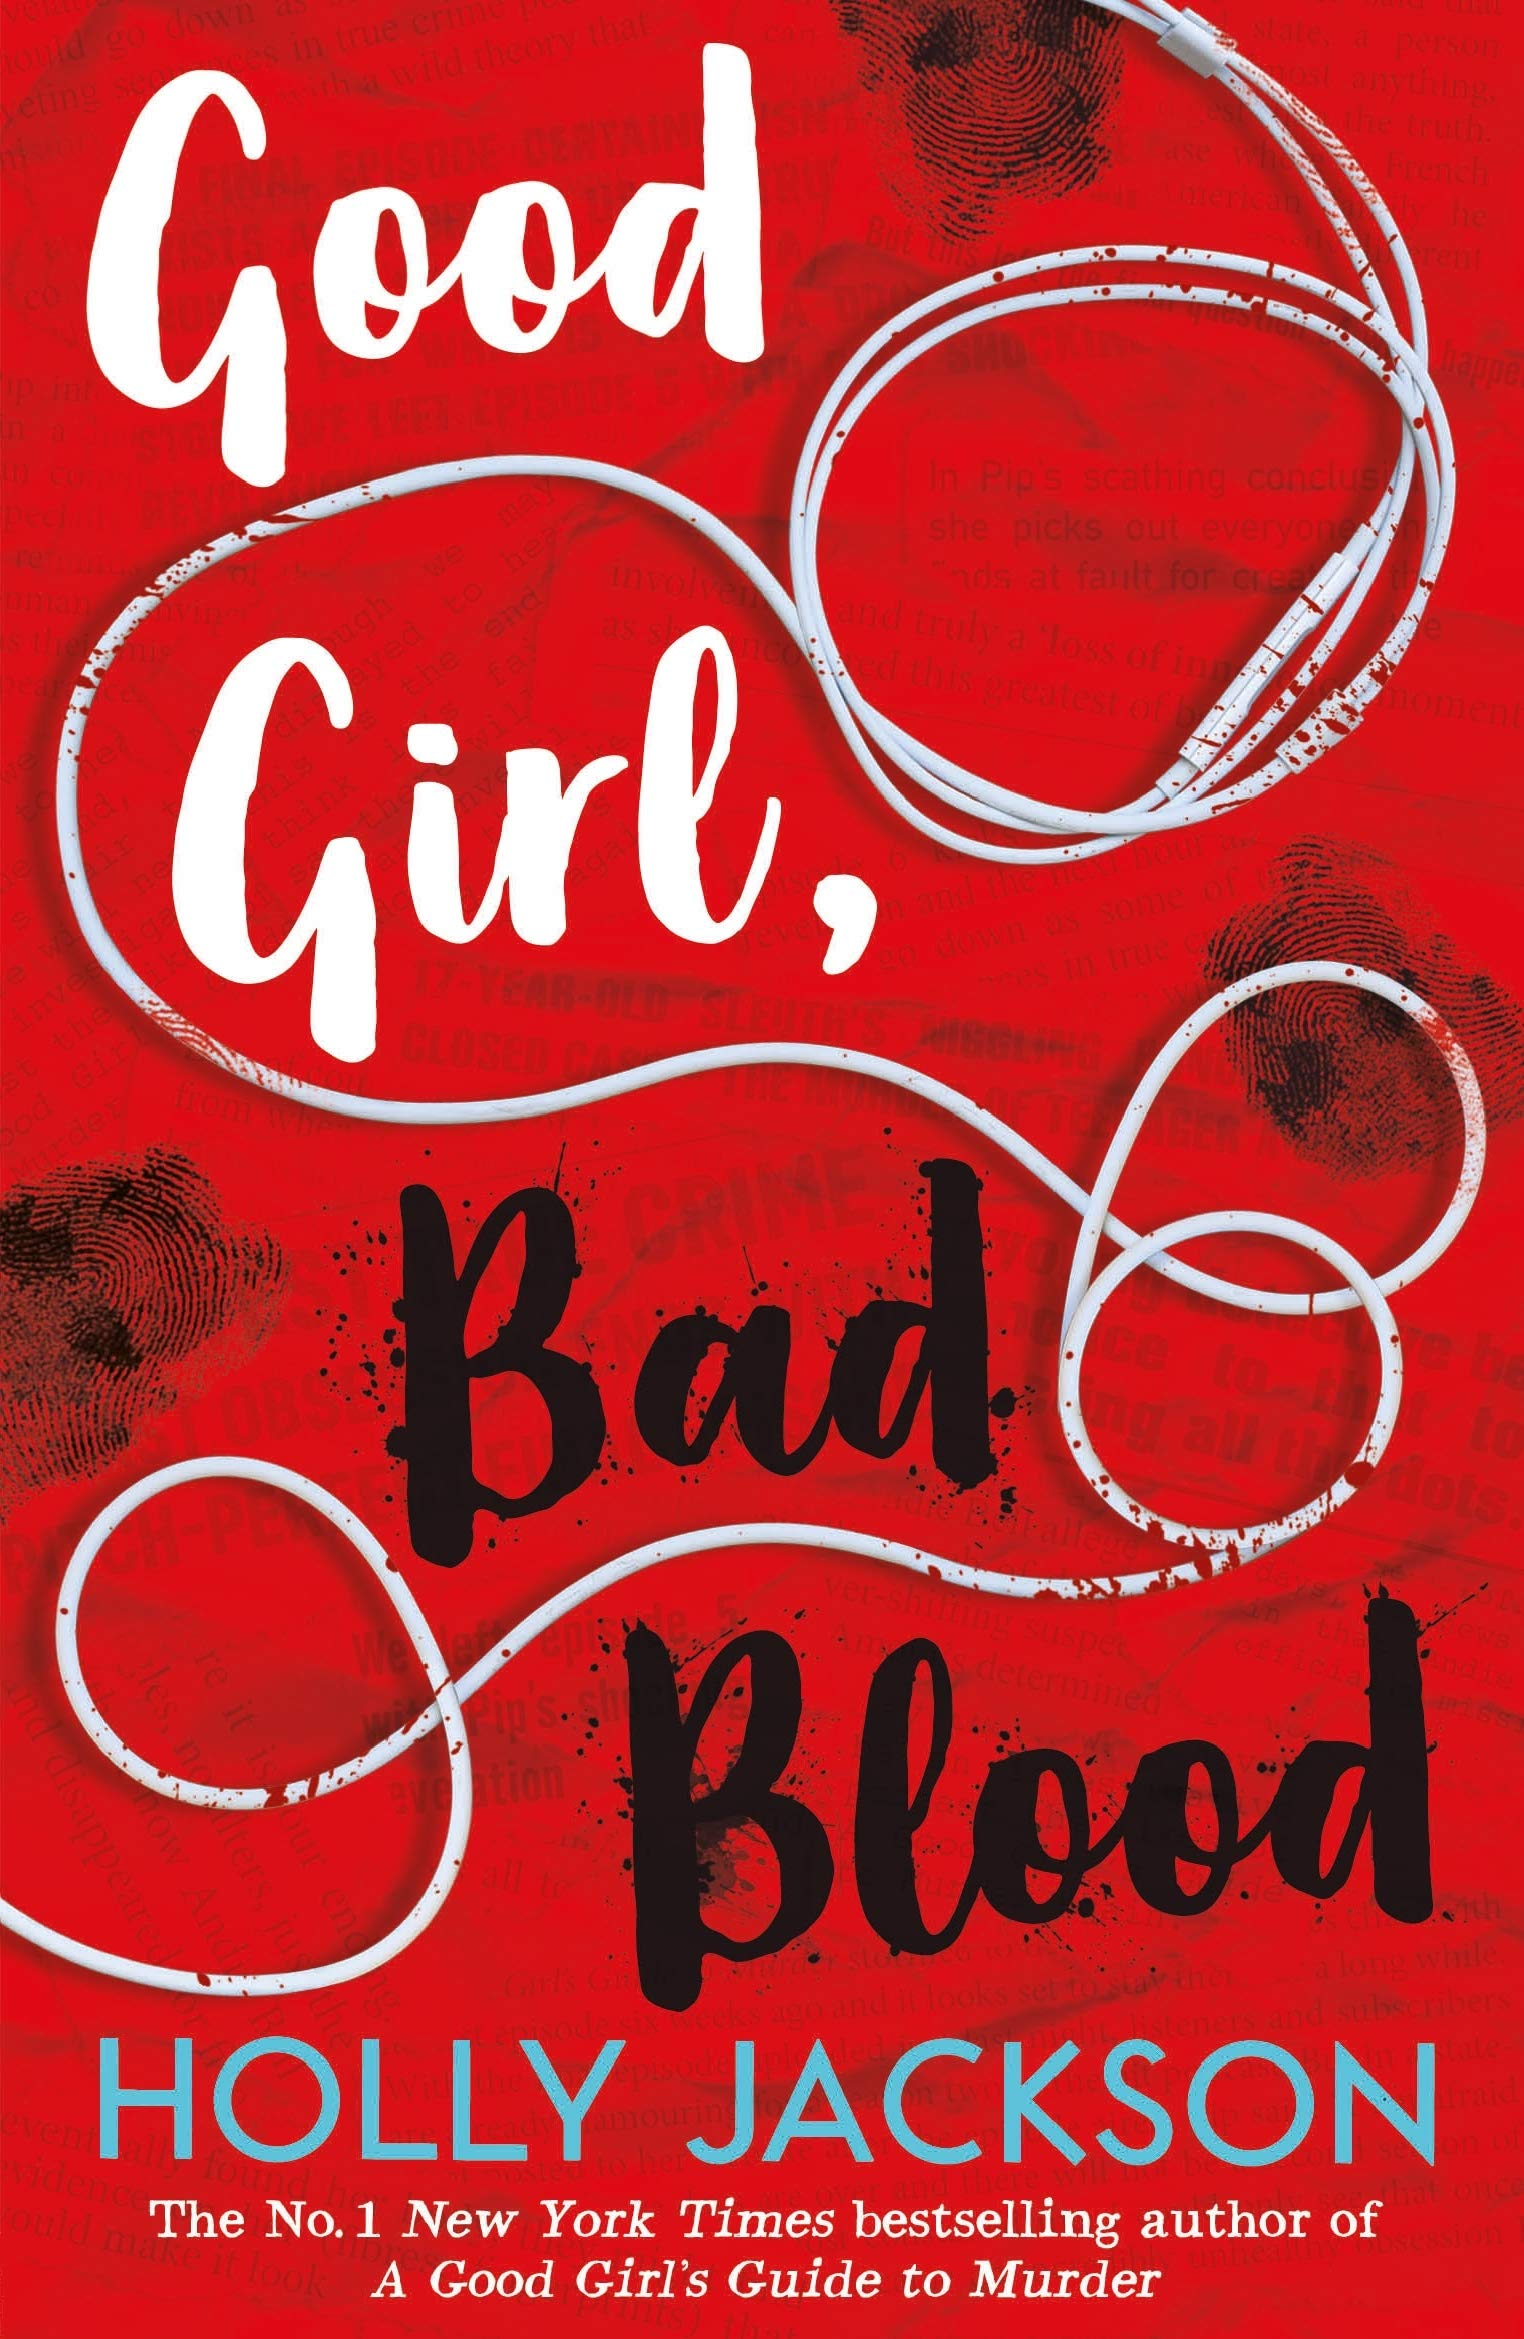 Good Girl, Bad Blood book cover image from a June and July Reading Recap.